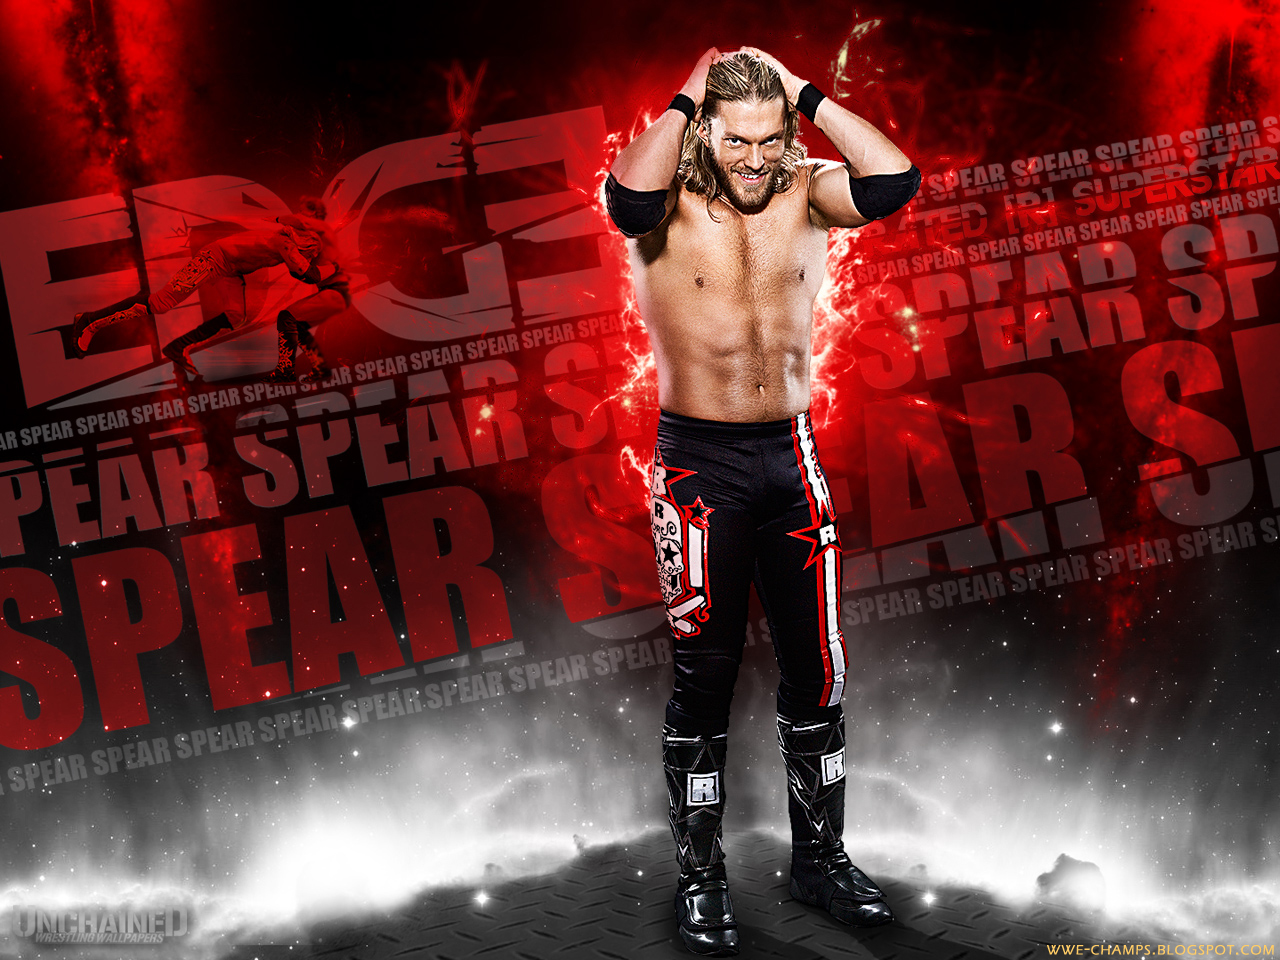 WWE CHAMPS: THE RATED R SUPERSTAR EDGE